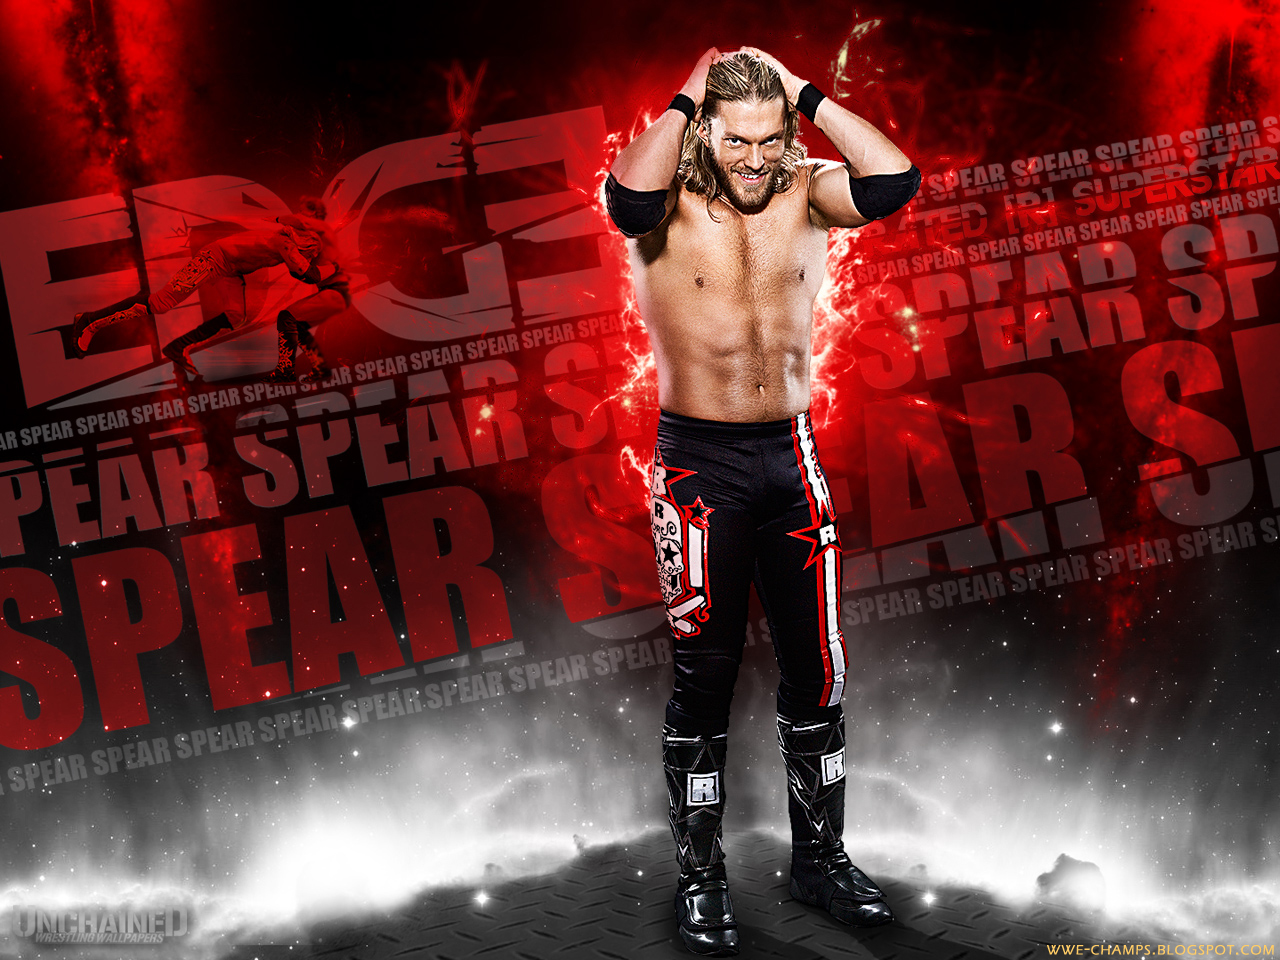 WWE CHAMPS: THE RATED R SUPERSTAR EDGE